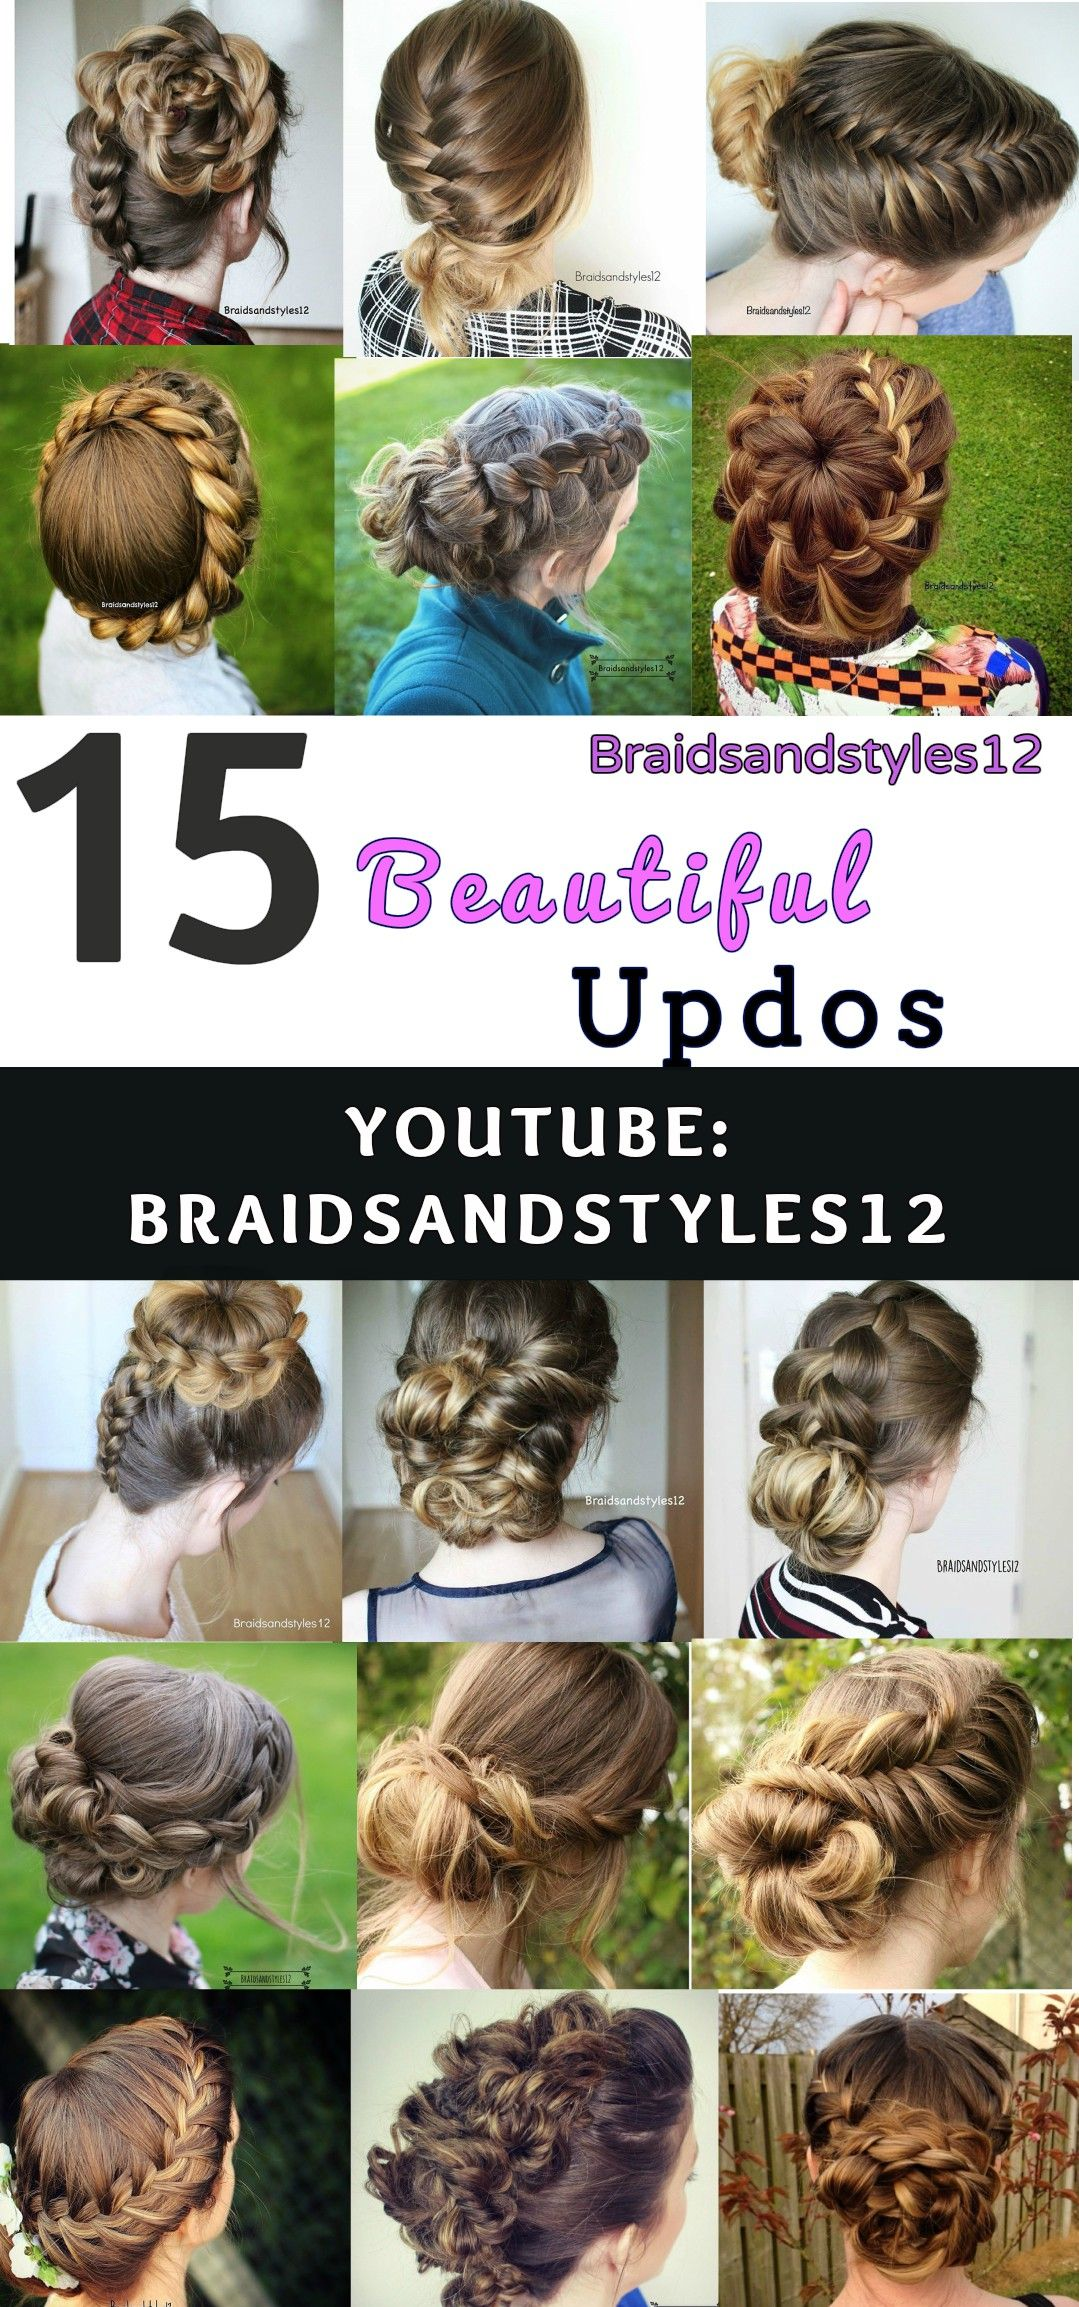 Braidsandstyles Perfect Hairstyle Updos And Hair Style - Diy updos youtube